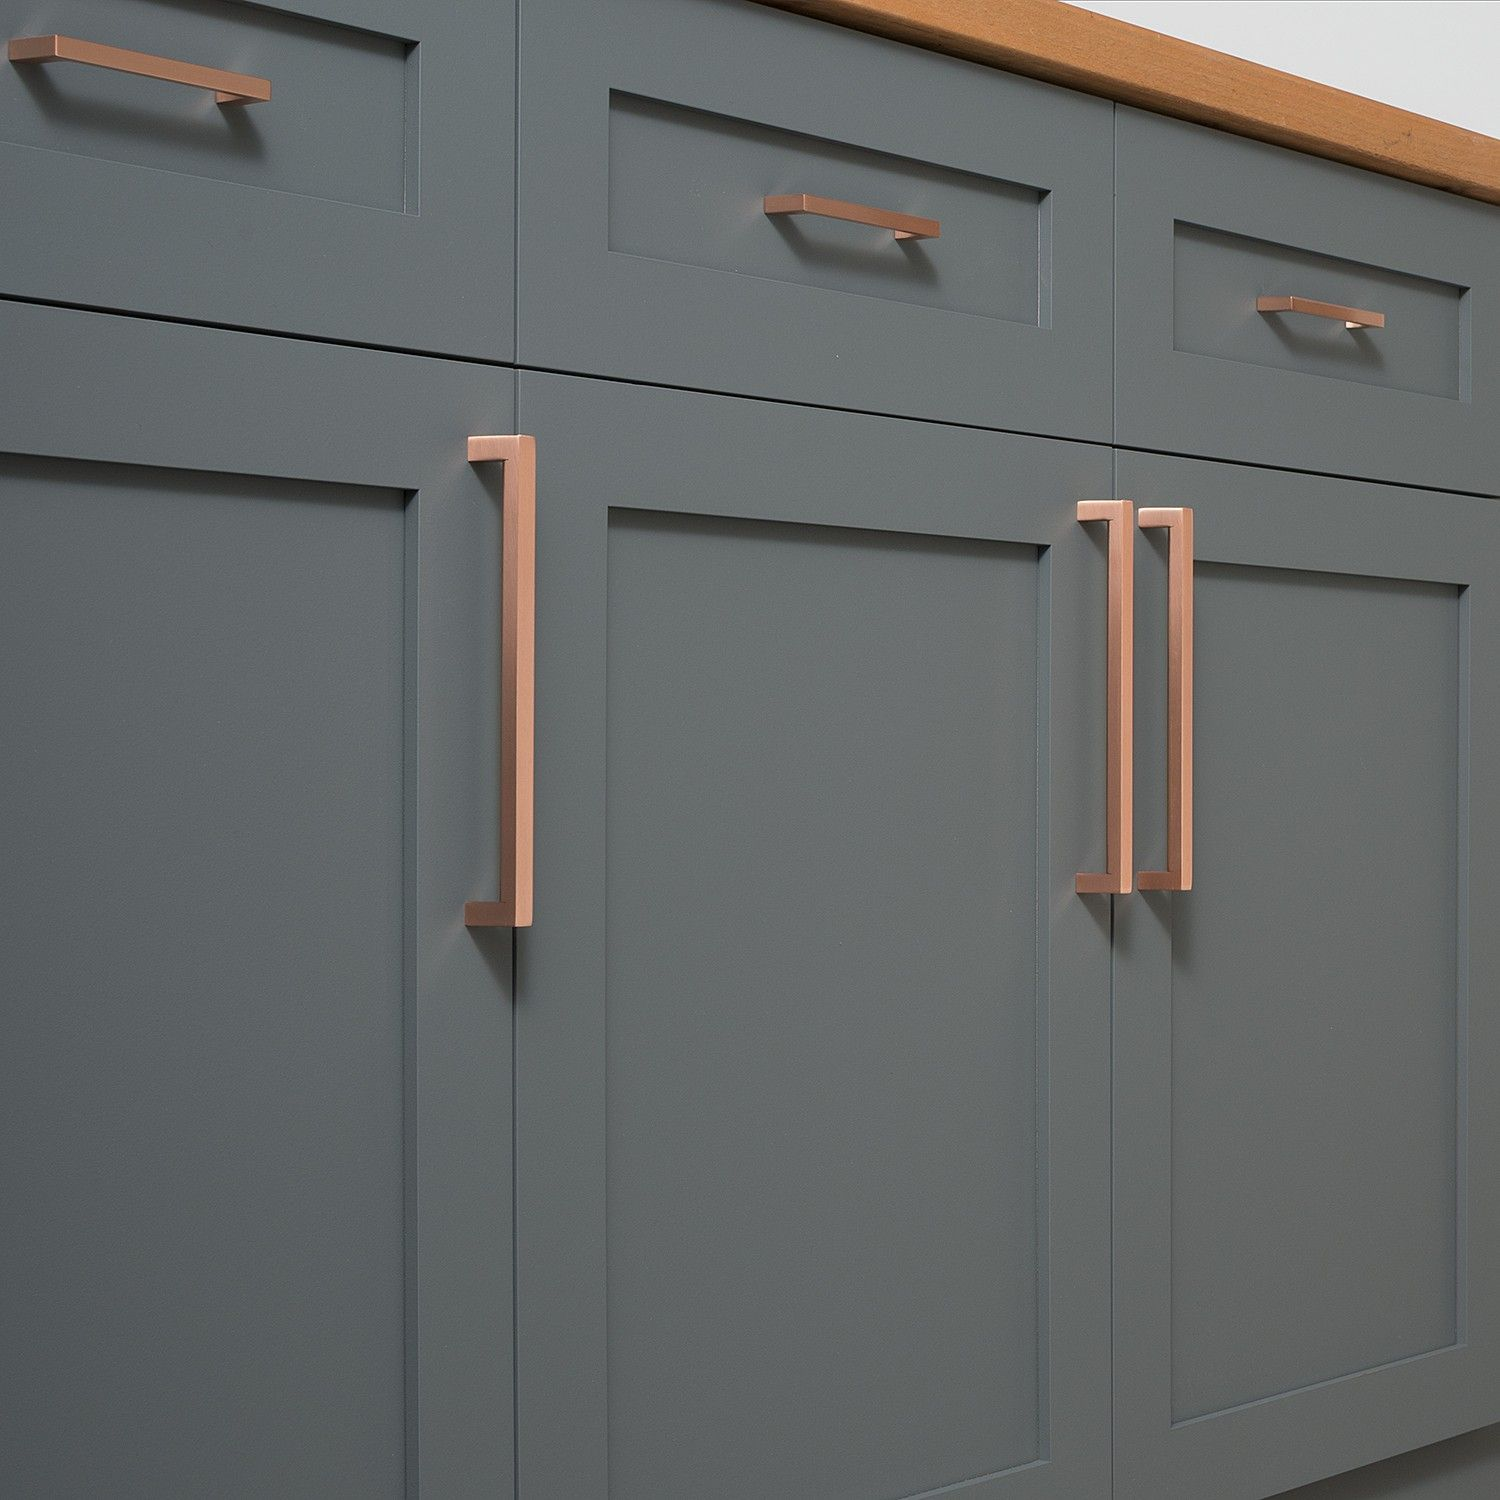 Edgecliff Pull - Satin Copper | Pinterest | Hardware, Drawers and Satin